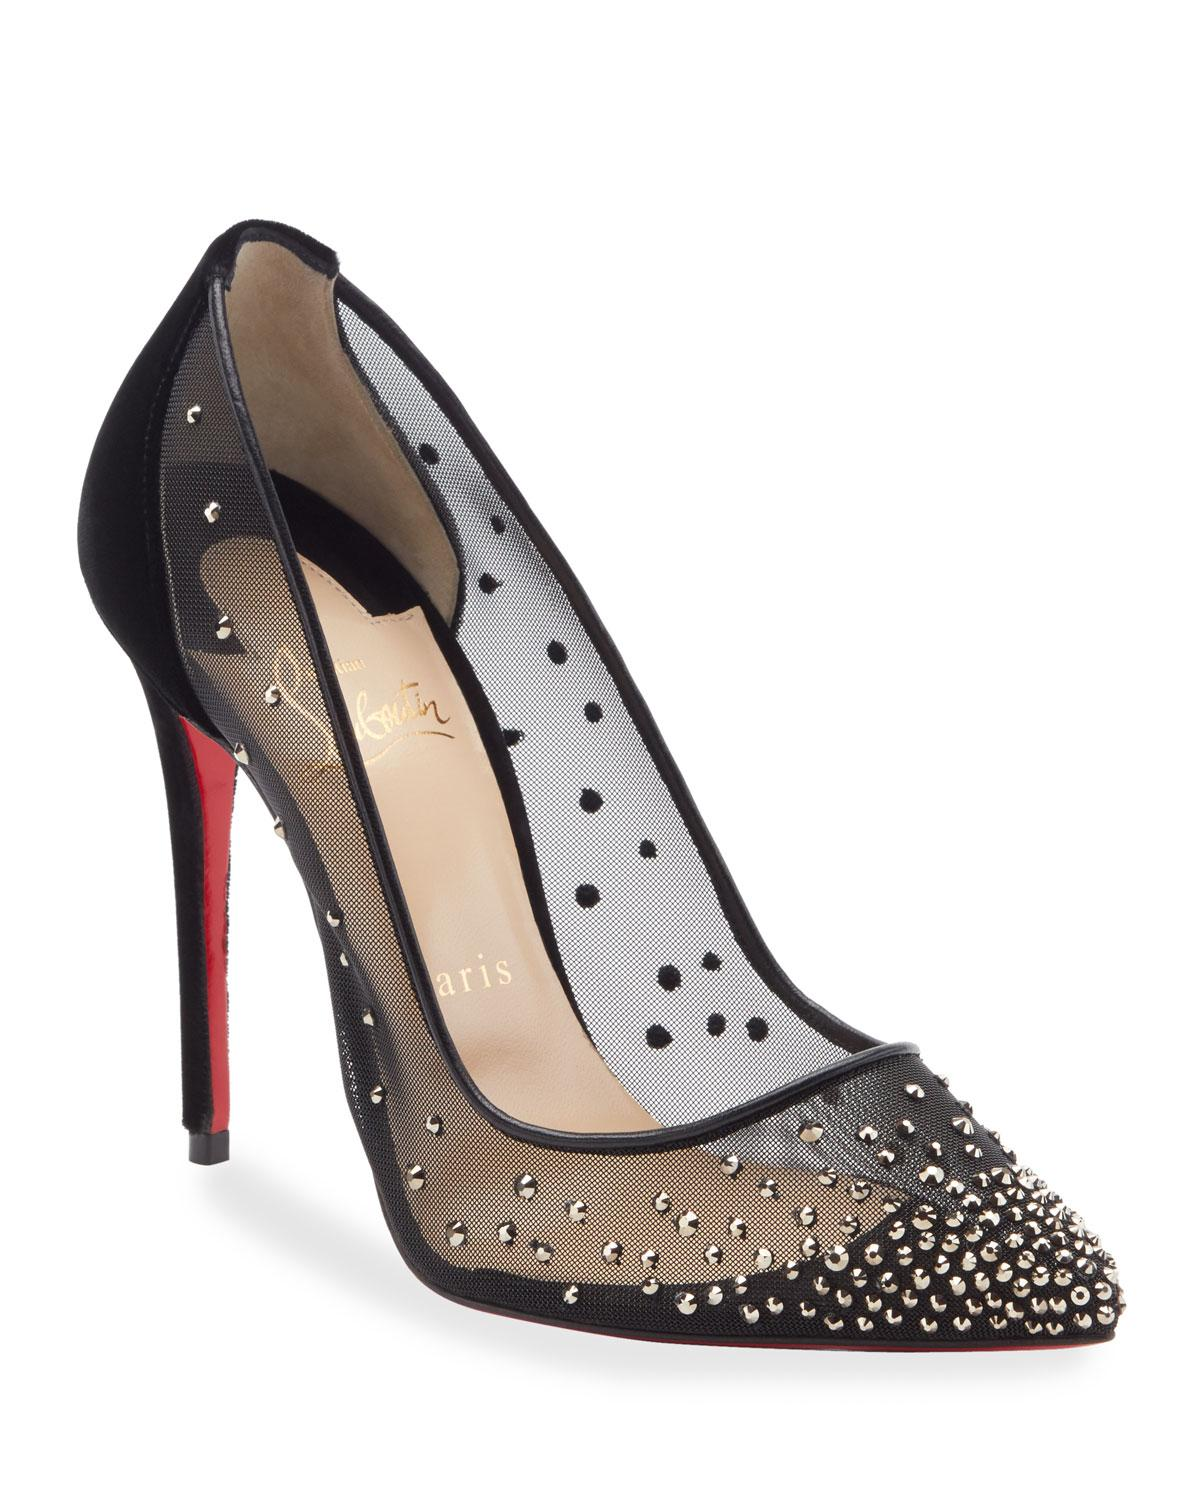 promo code c1969 a3b2f Christian Louboutin Black Follies Strass-embellished Red Sole Pumps